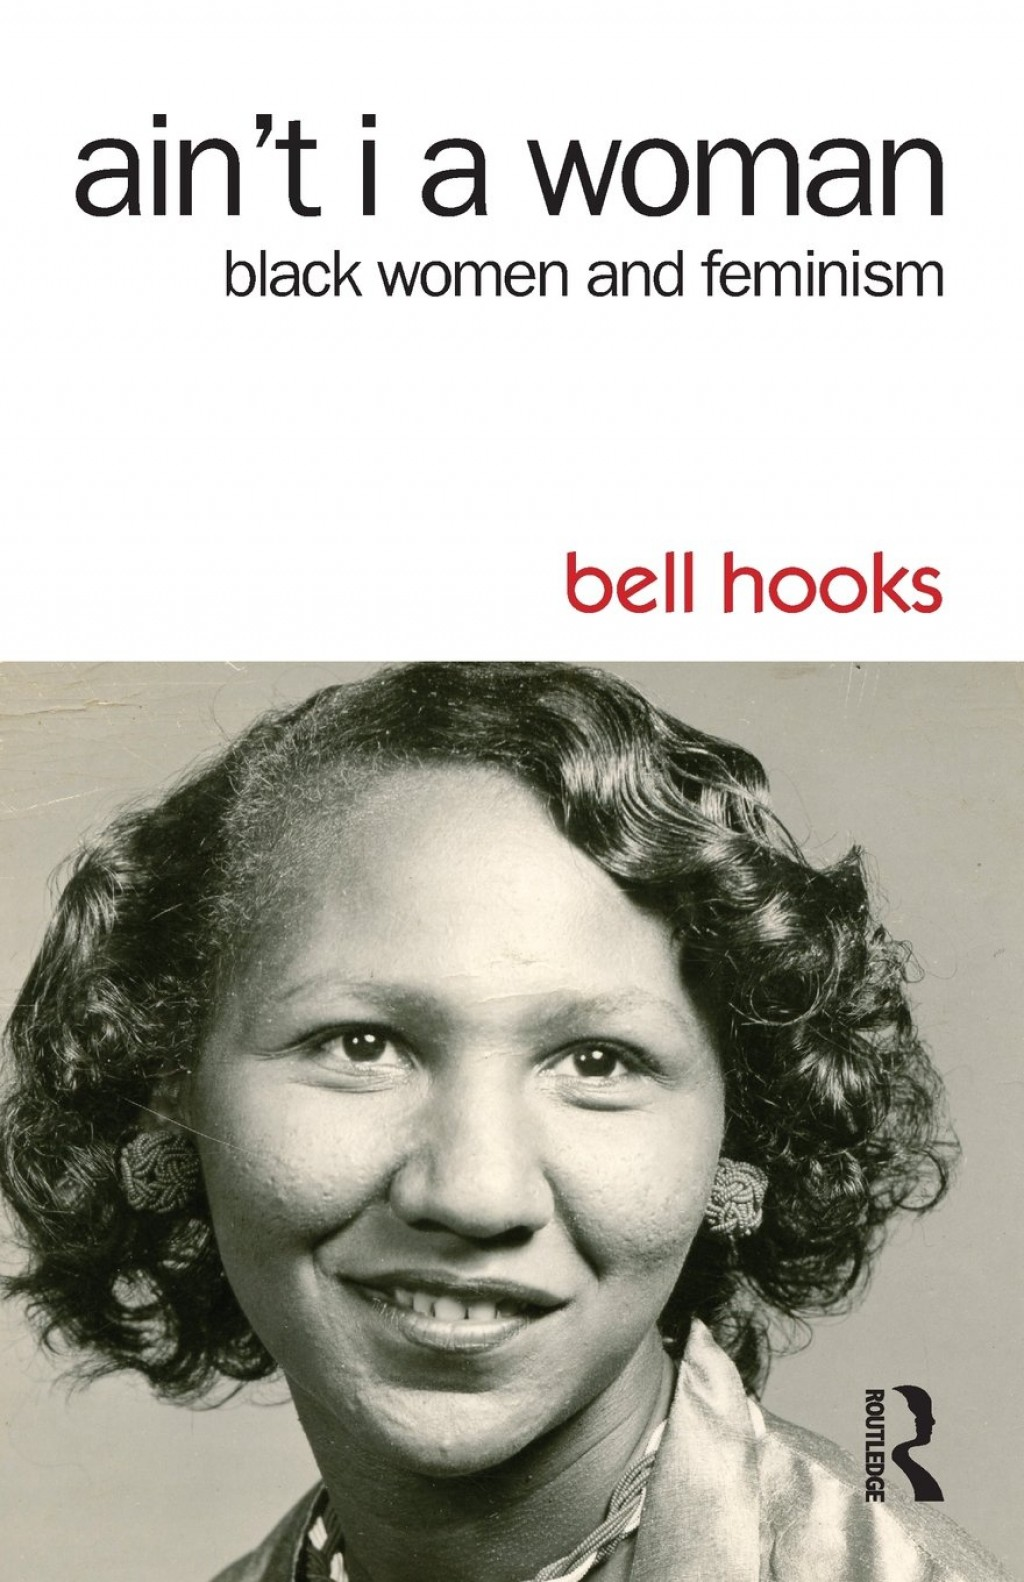 003 Essay Example 71kbnqfypdl Bell Hooks Best Essays Keeping Close To Home Patriarchy Feminism Large